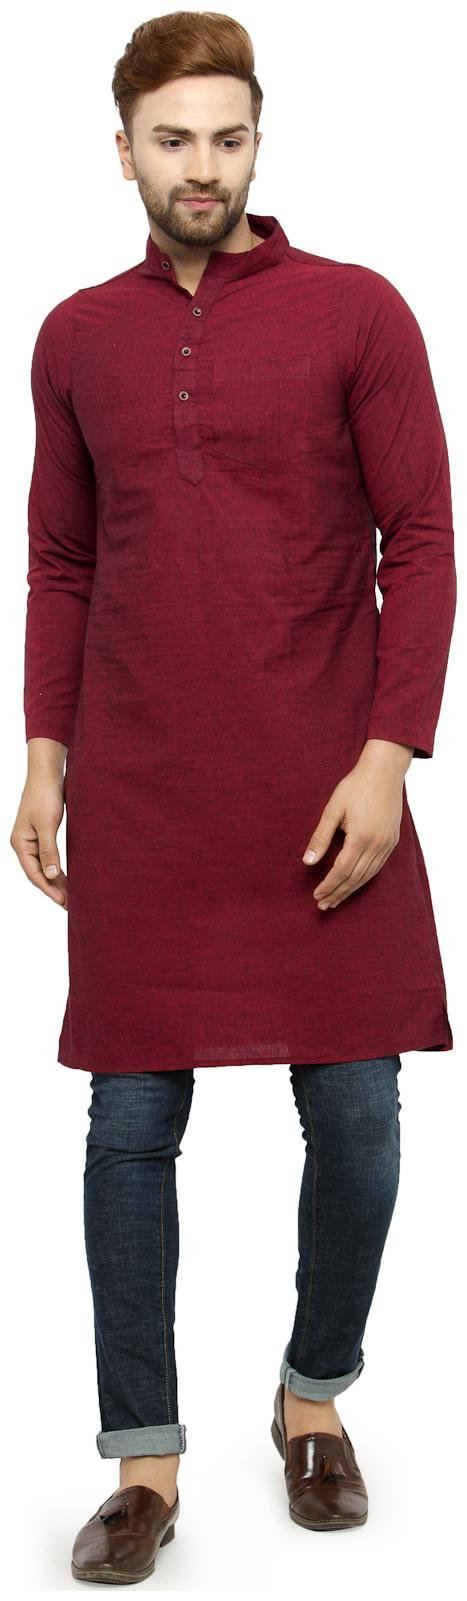 https://assetscdn1.paytm.com/images/catalog/product/A/AP/APPMAROON-SOLIDED4571498272C64/1562945028165_0..jpg